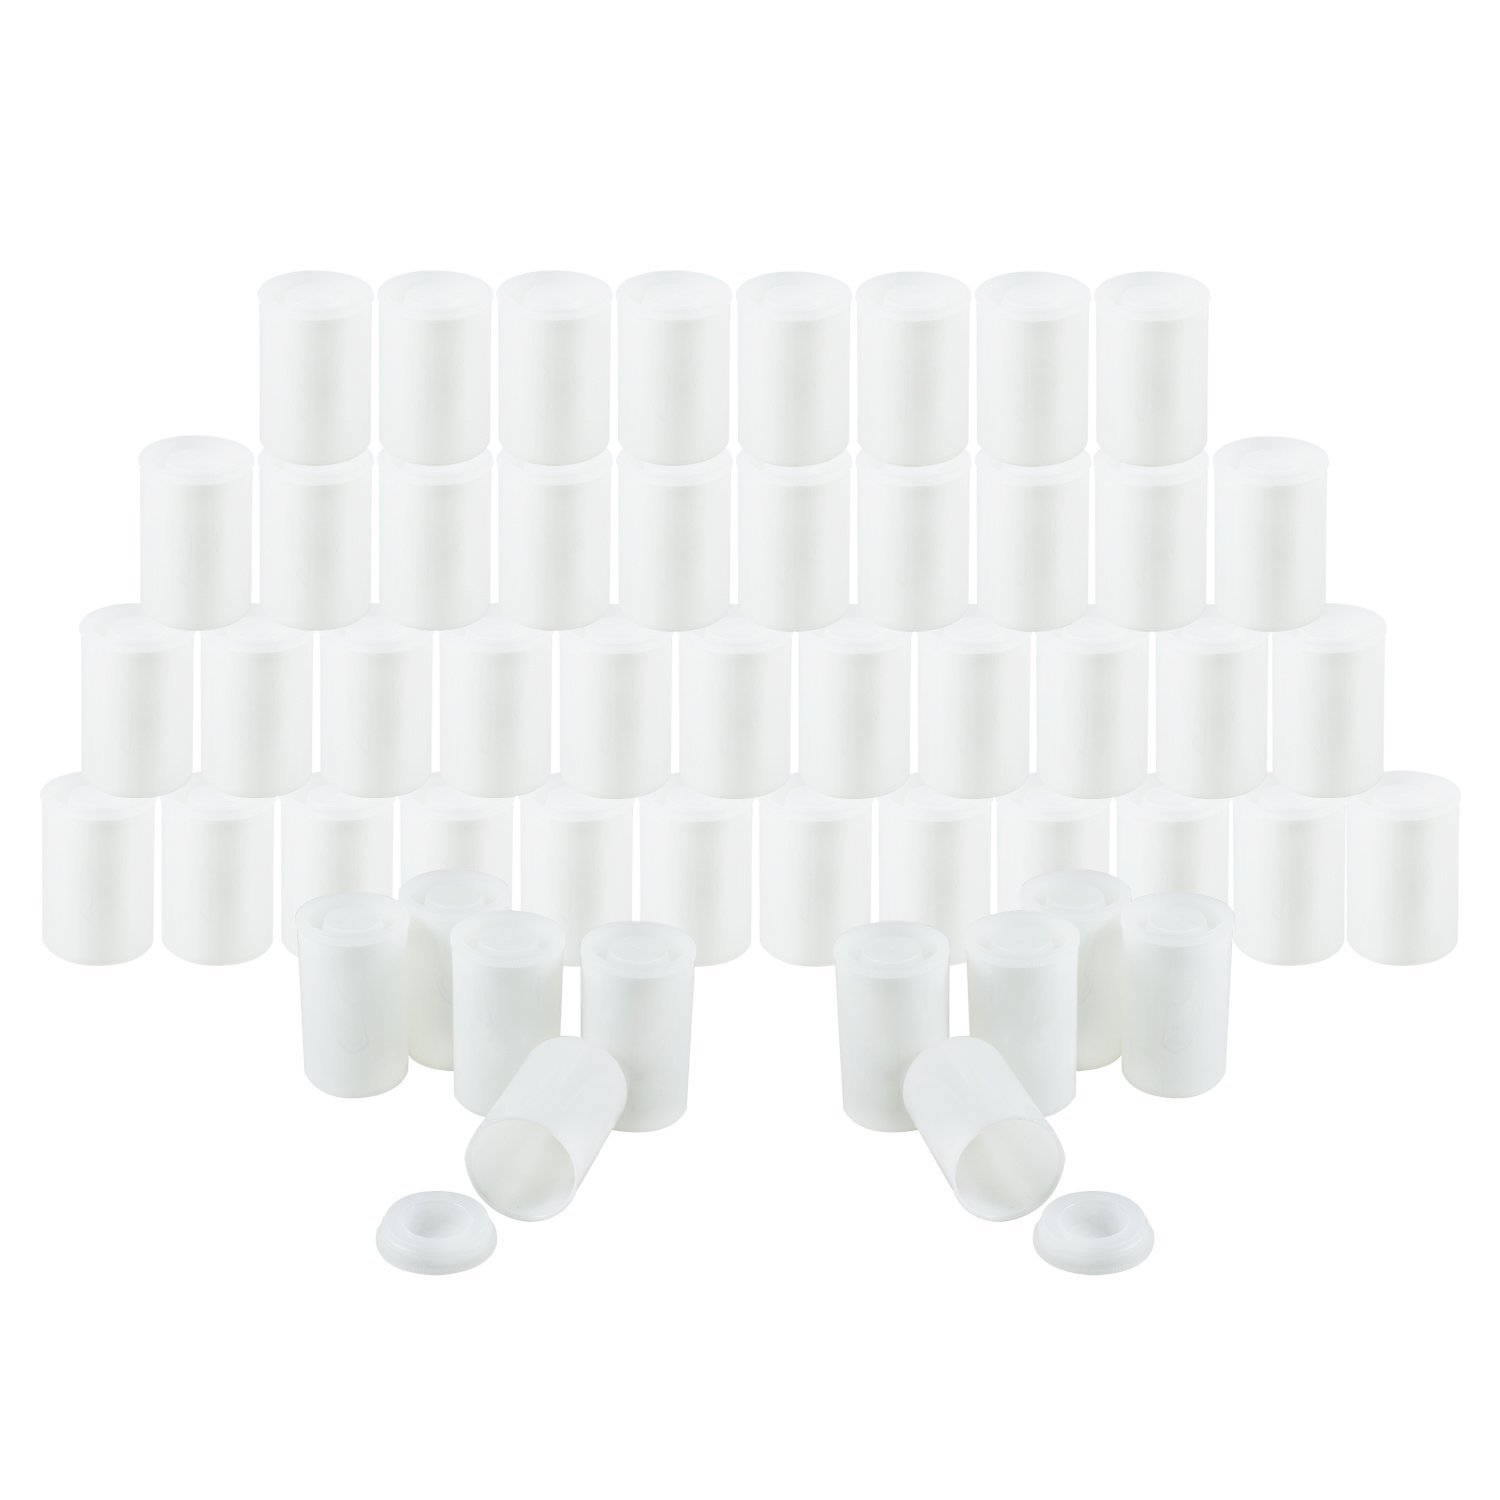 Houseables Film Canister, 35MM Empty Camera Reel Containers, 60 Pack, White, 2' H, 1' W, Plastic, Films Developing Processing Tube, Roll Case, With Caps, For Small Accessories, Beads, Alka Seltzer 2 H 1 W FiCa60